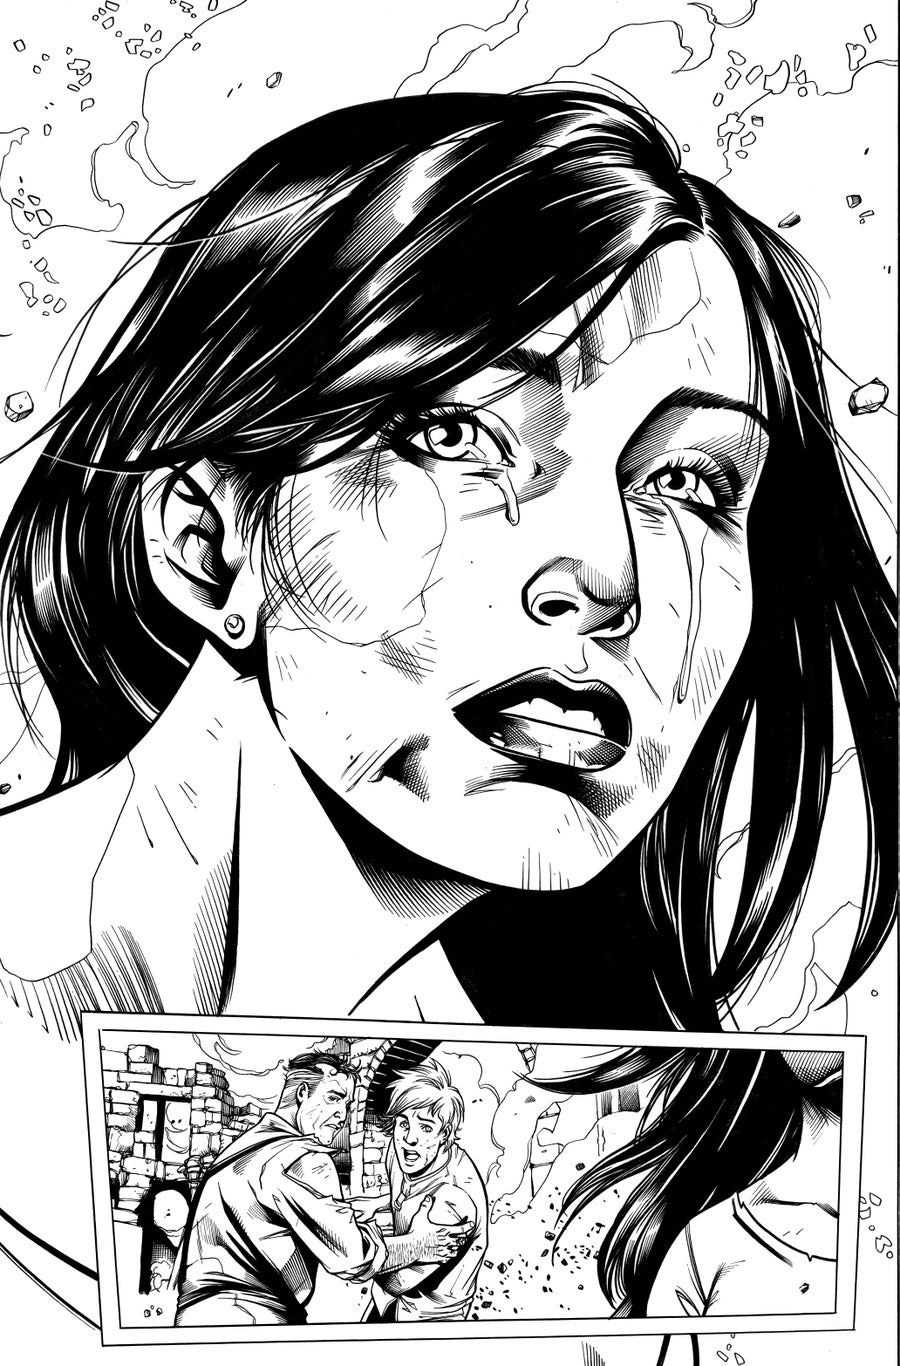 Image of Dark Knights: Death Metal: The Last 52: War of the Multiverses: Lois (2020) #1 PG 1